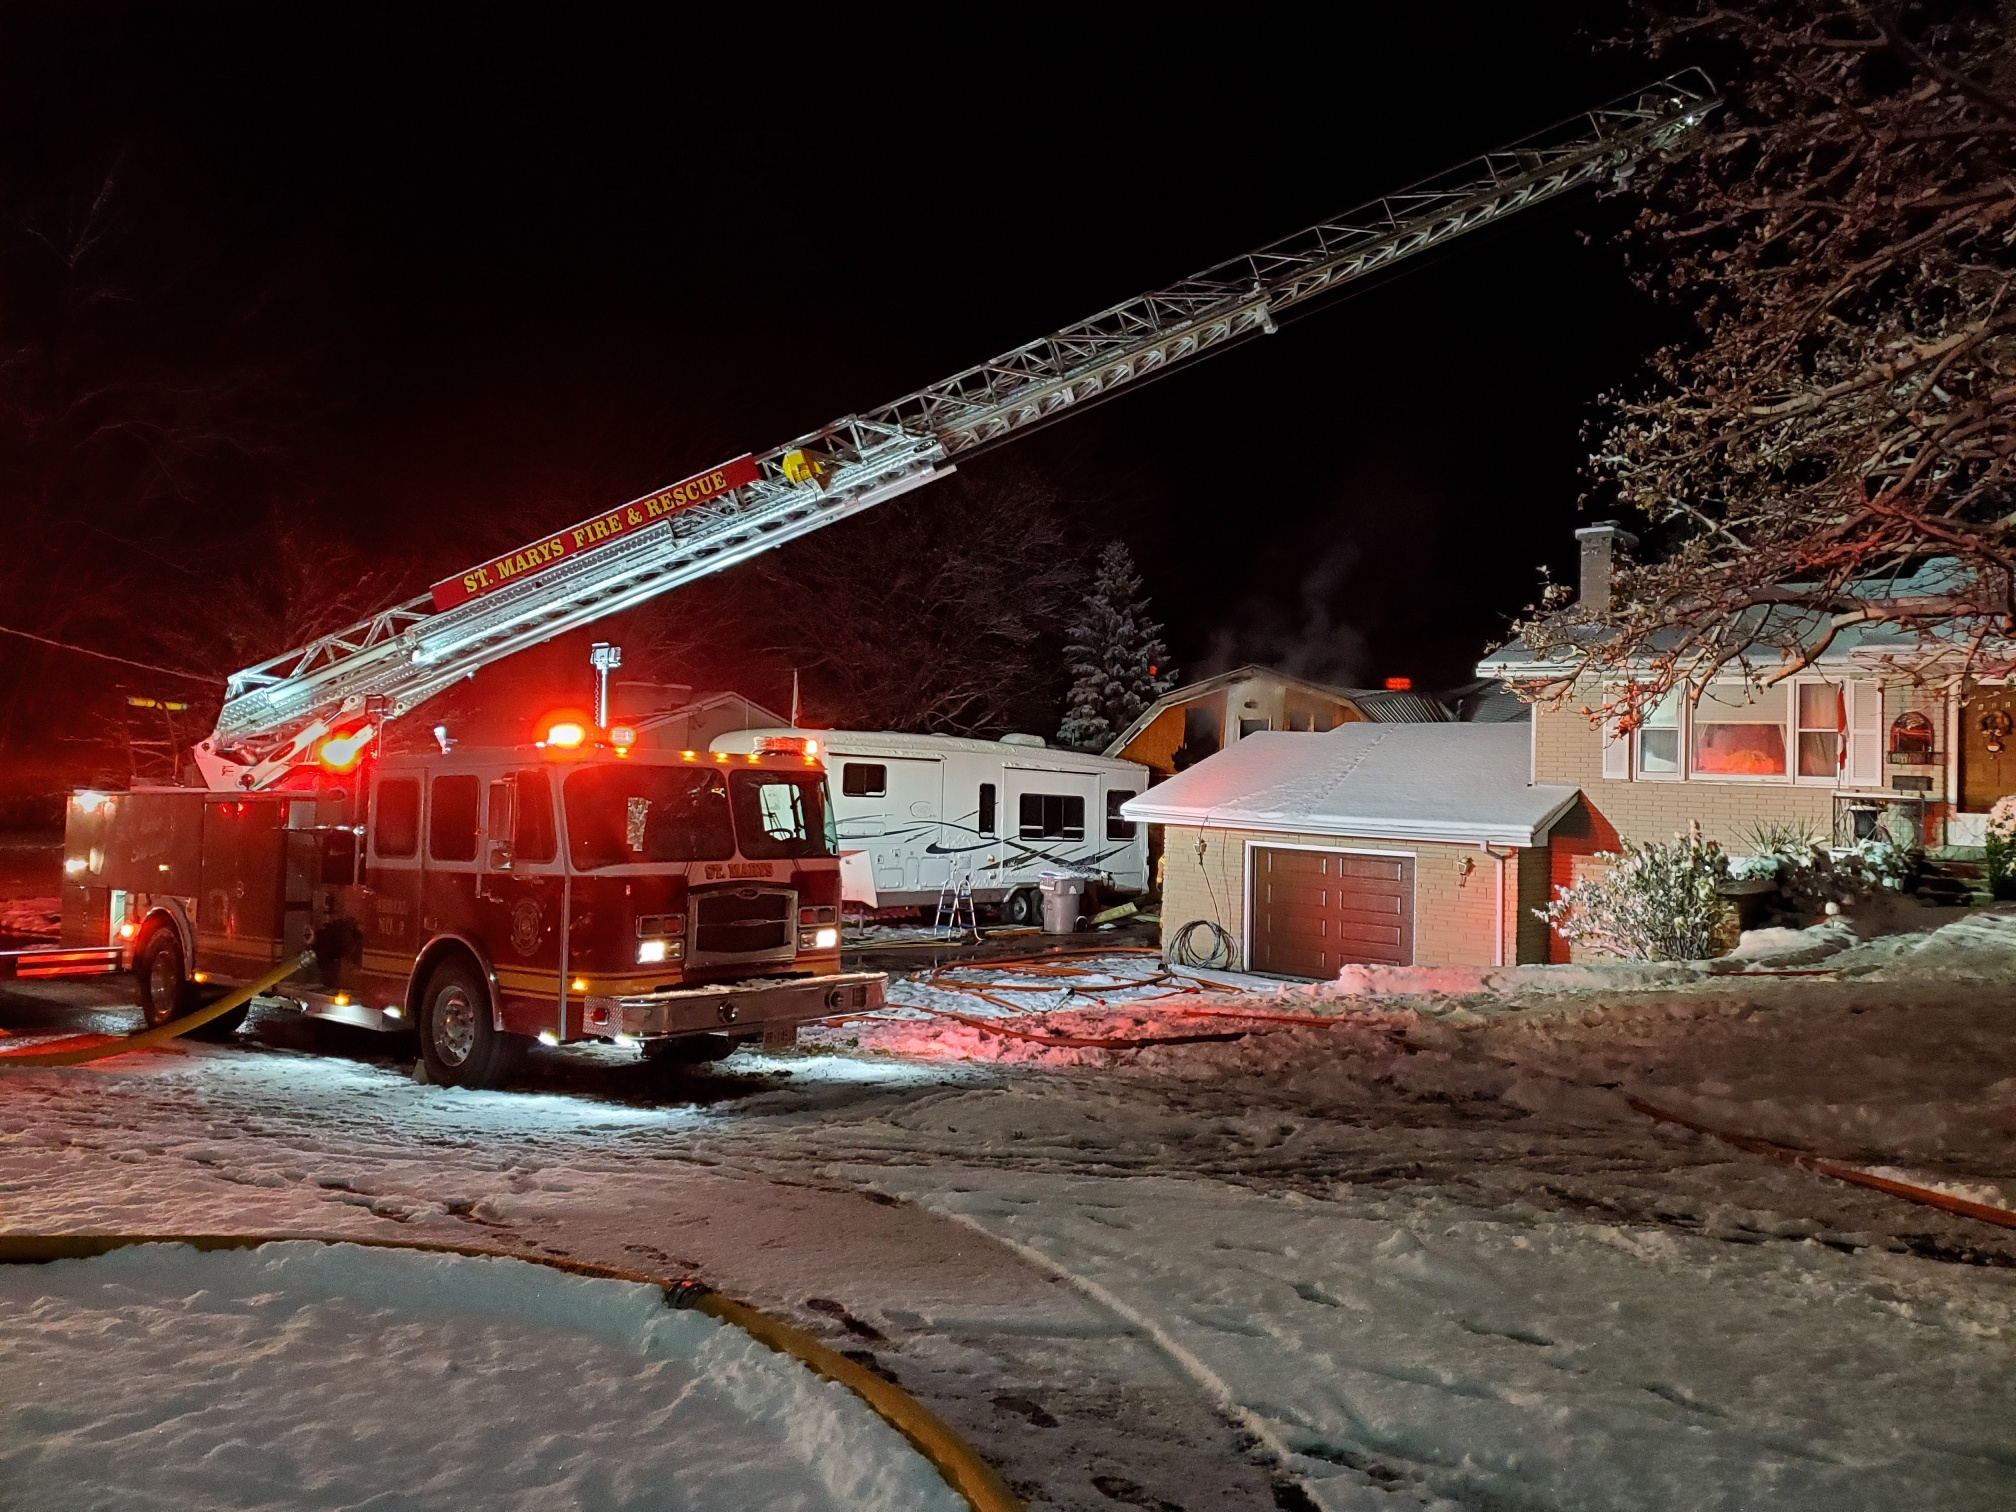 Ladder truck in use 2019